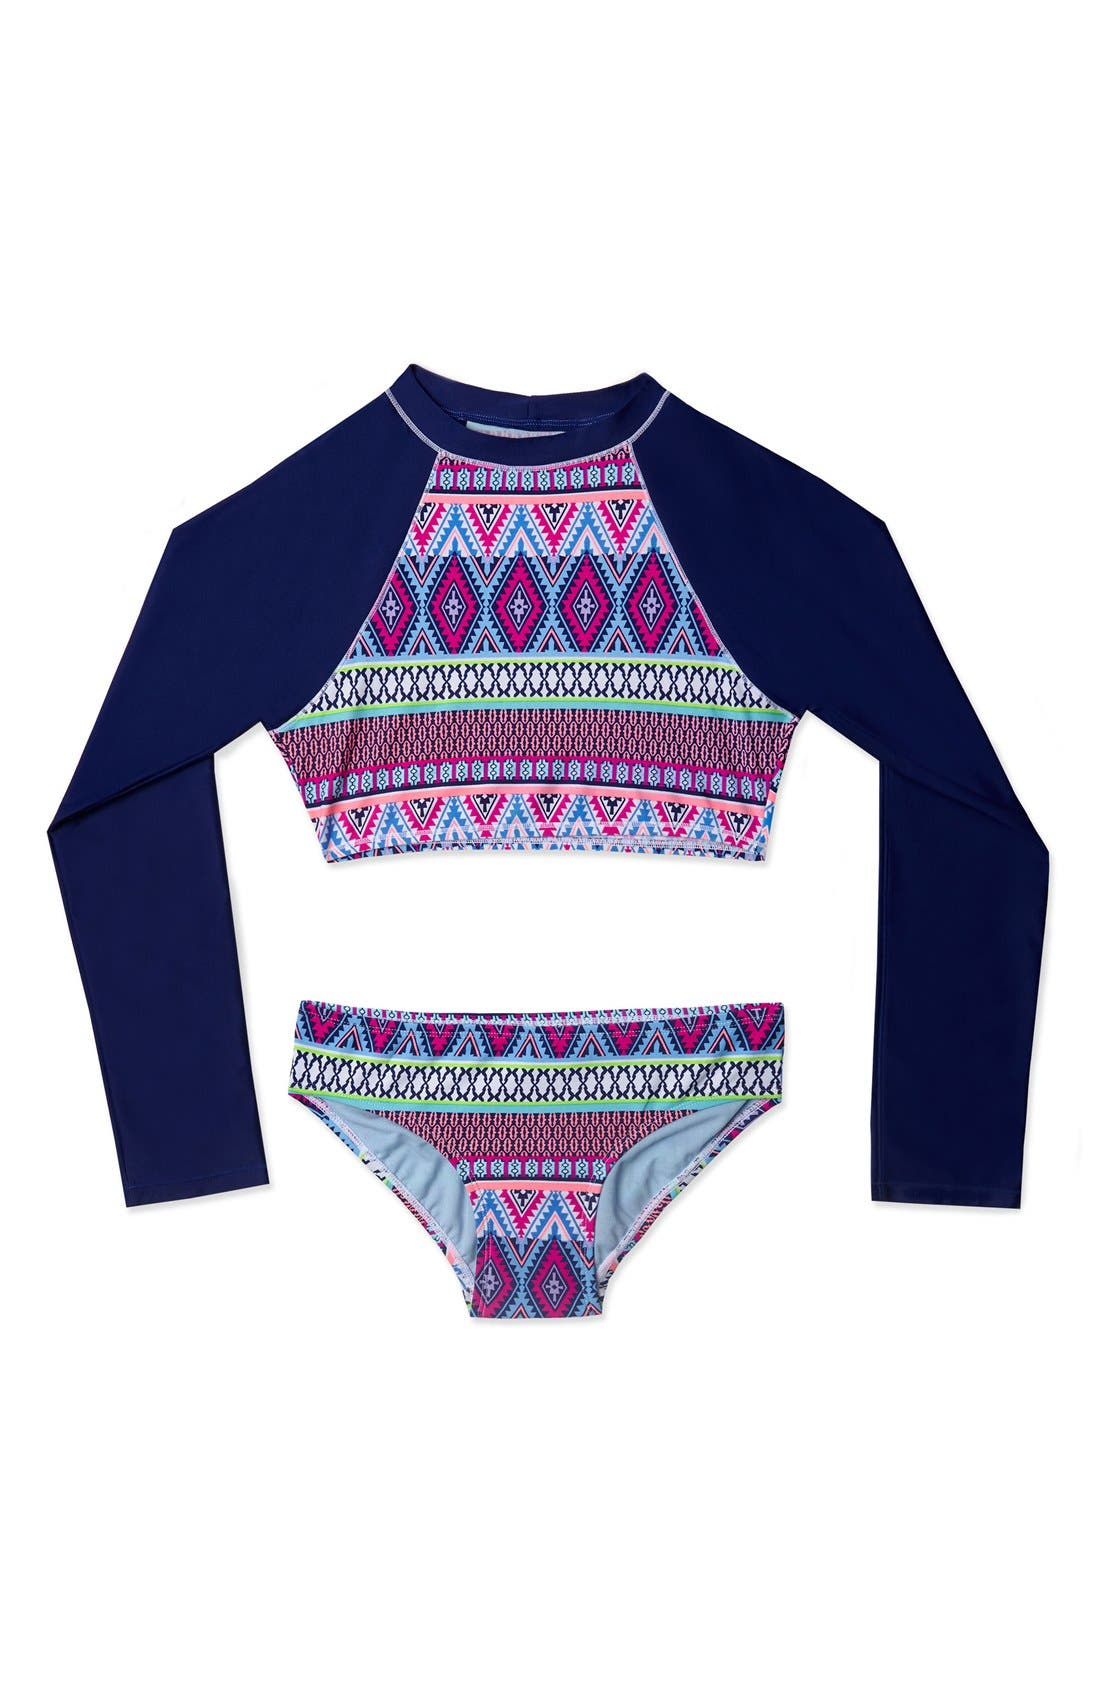 'Stripe Fusion' Two-Piece Rashguard Swimsuit,                             Main thumbnail 1, color,                             Navy Pink